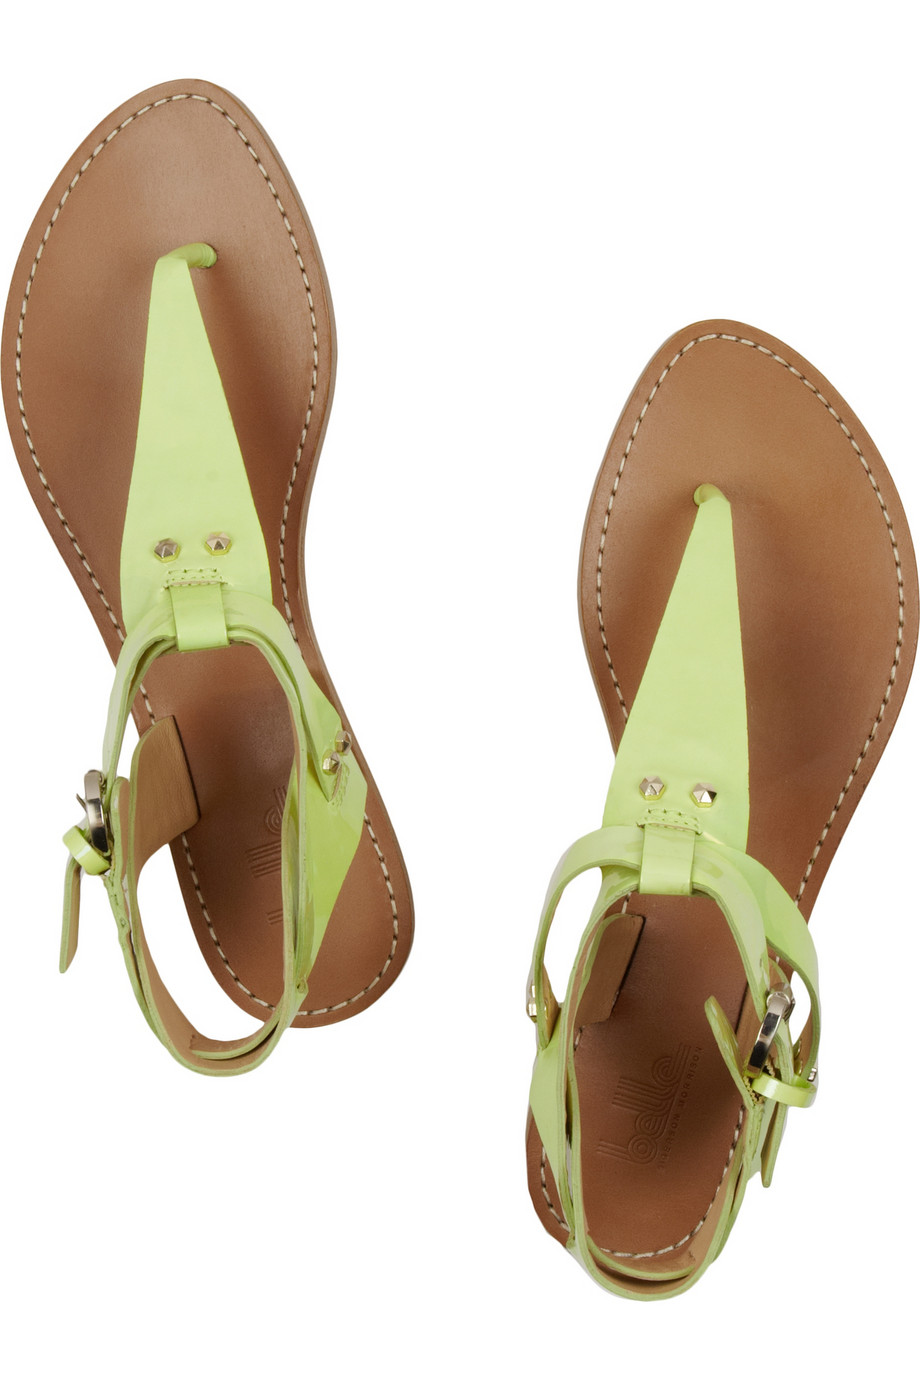 Belle By Sigerson Morrison Randy Patentleather Sandals In